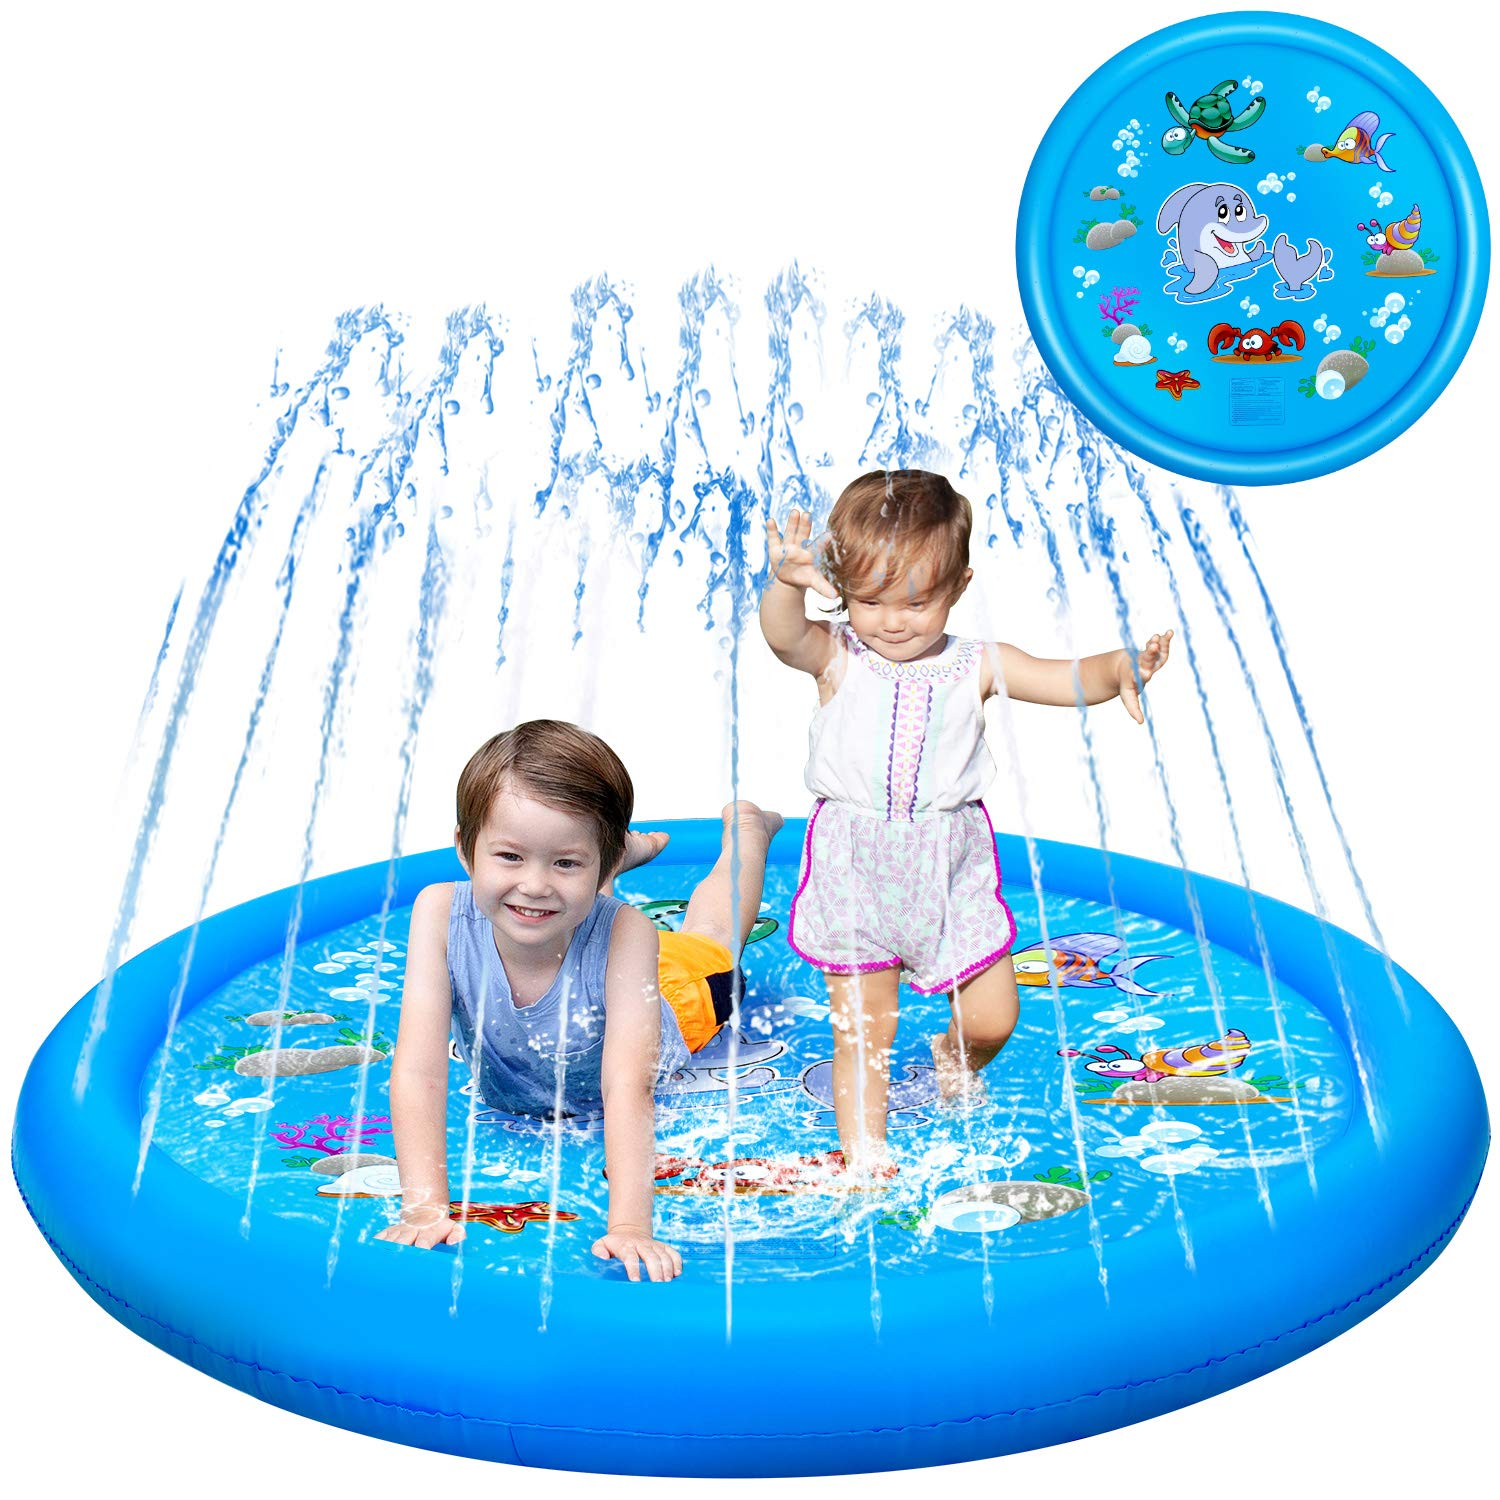 "KingsDragon Splash Pad for Kids, 68"" Sprinkler Outdoor Summer Swimming Wading Water Toys for Dogs Toddlers Kiddie Baby, Sprinkle & Splash Inflatable Pool Play Mat Gifts for 1-12 Year Old Boys Girls"